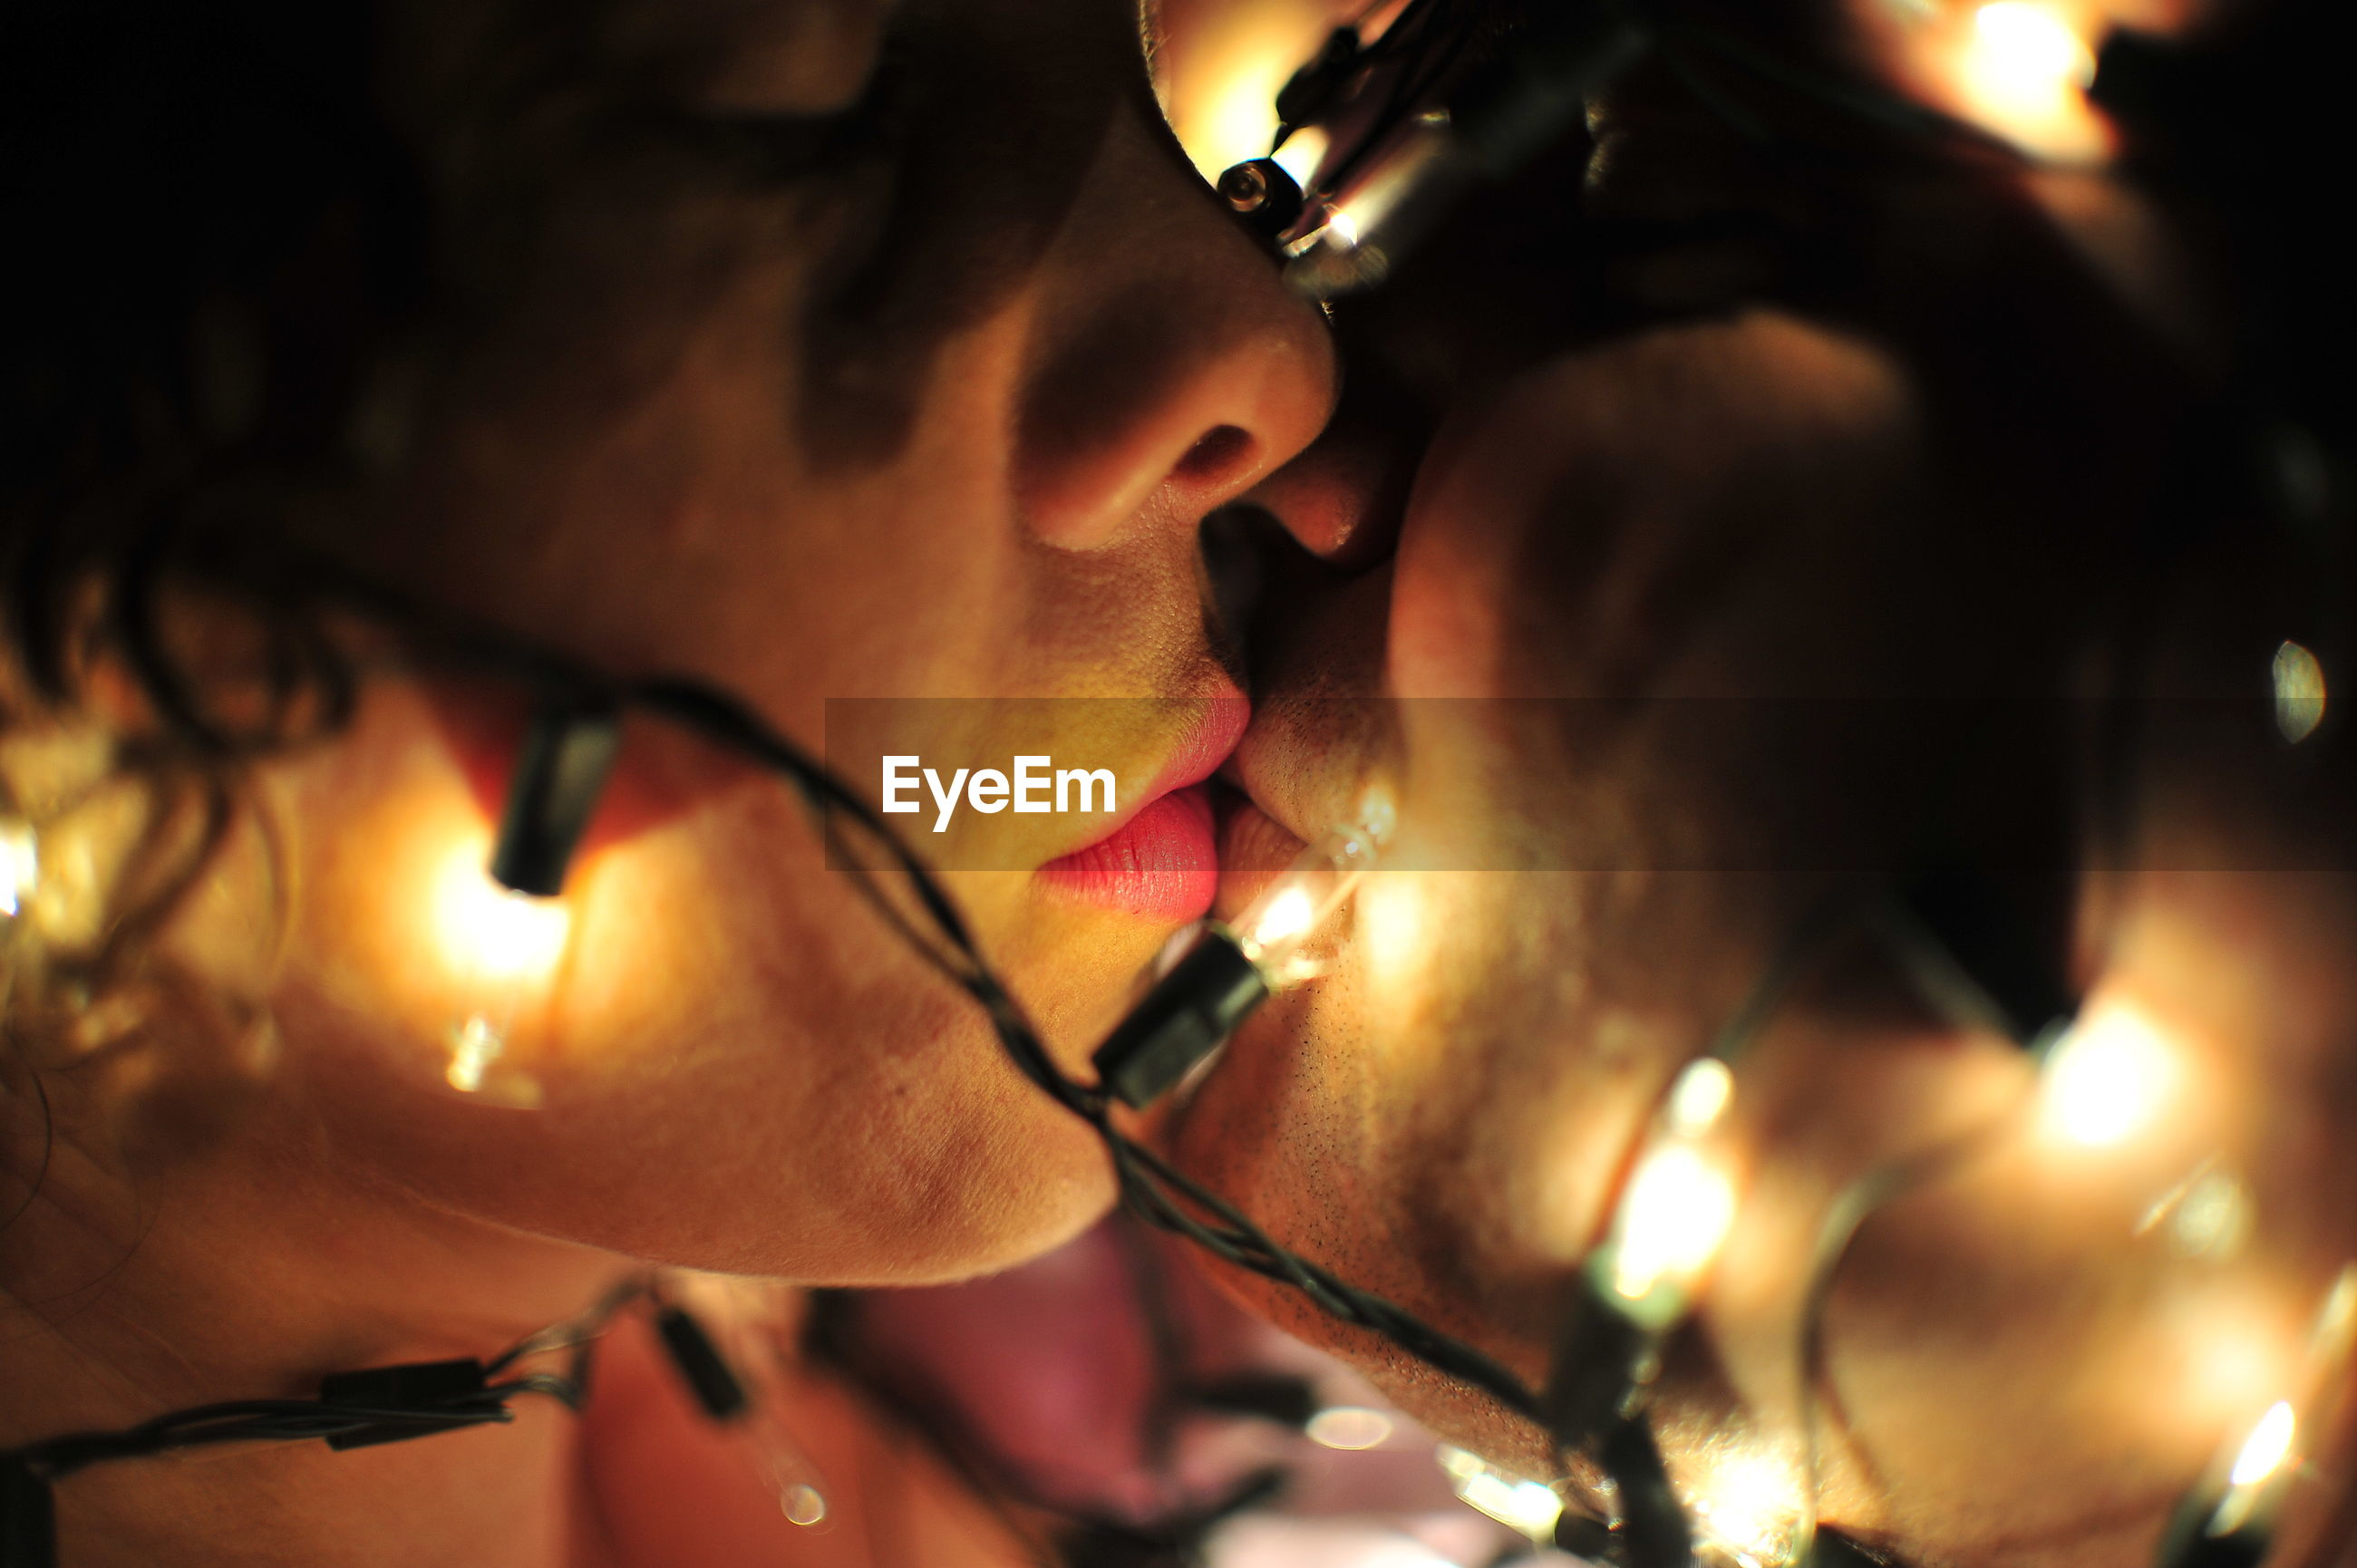 Close-up of young couple with illuminated string lights kissing in darkroom